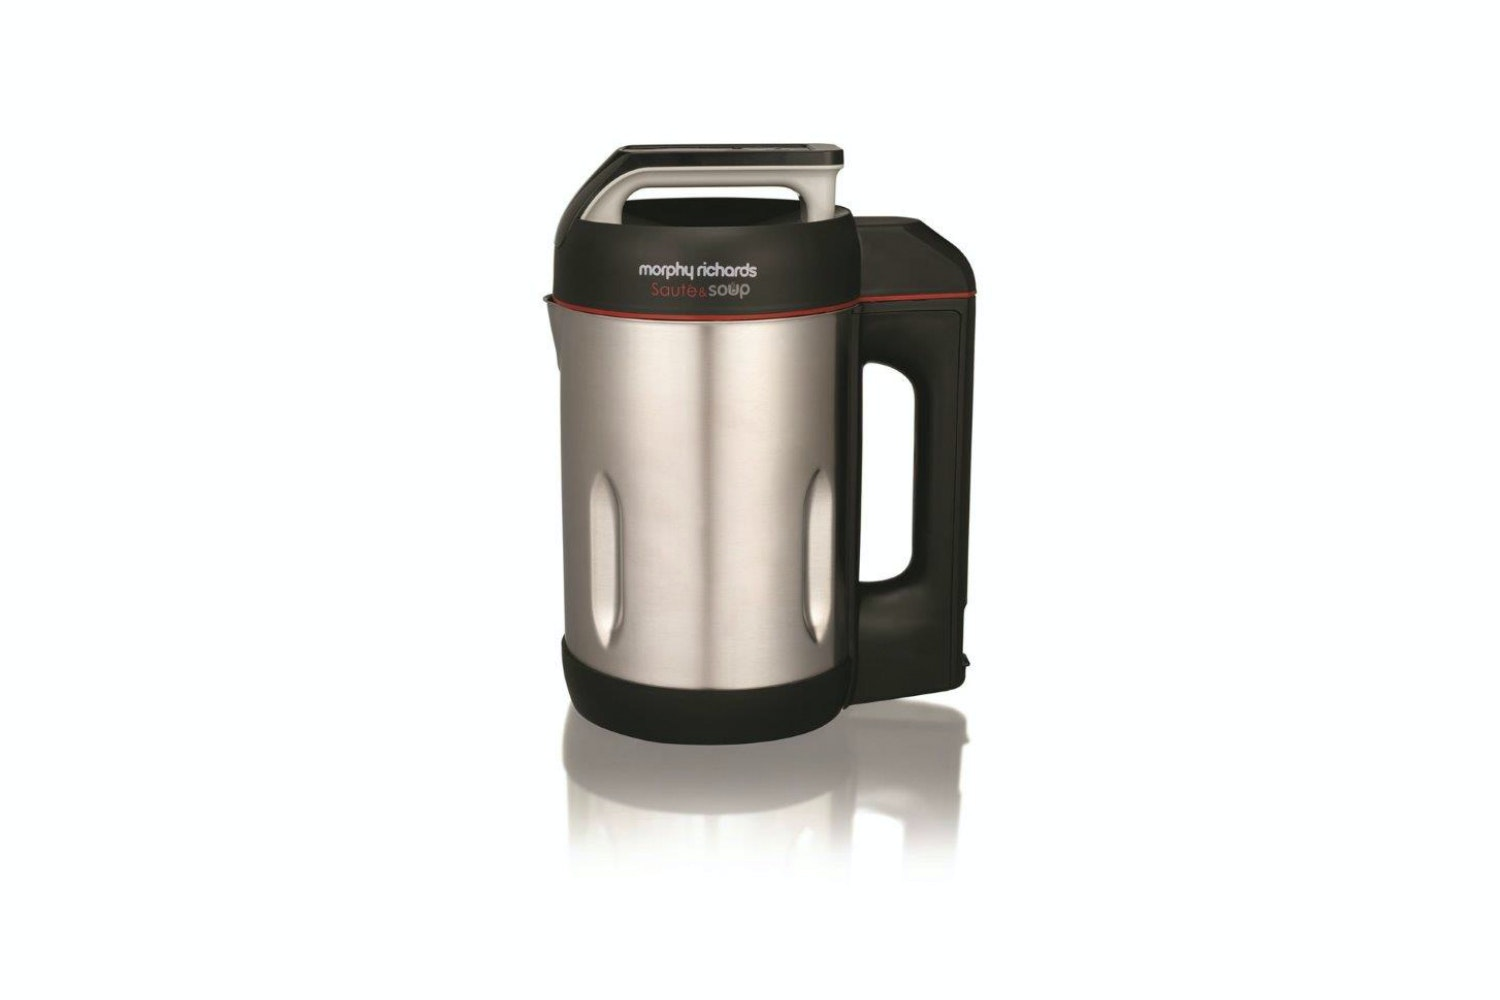 Morphy Richards Saute and Soup Maker | 501014